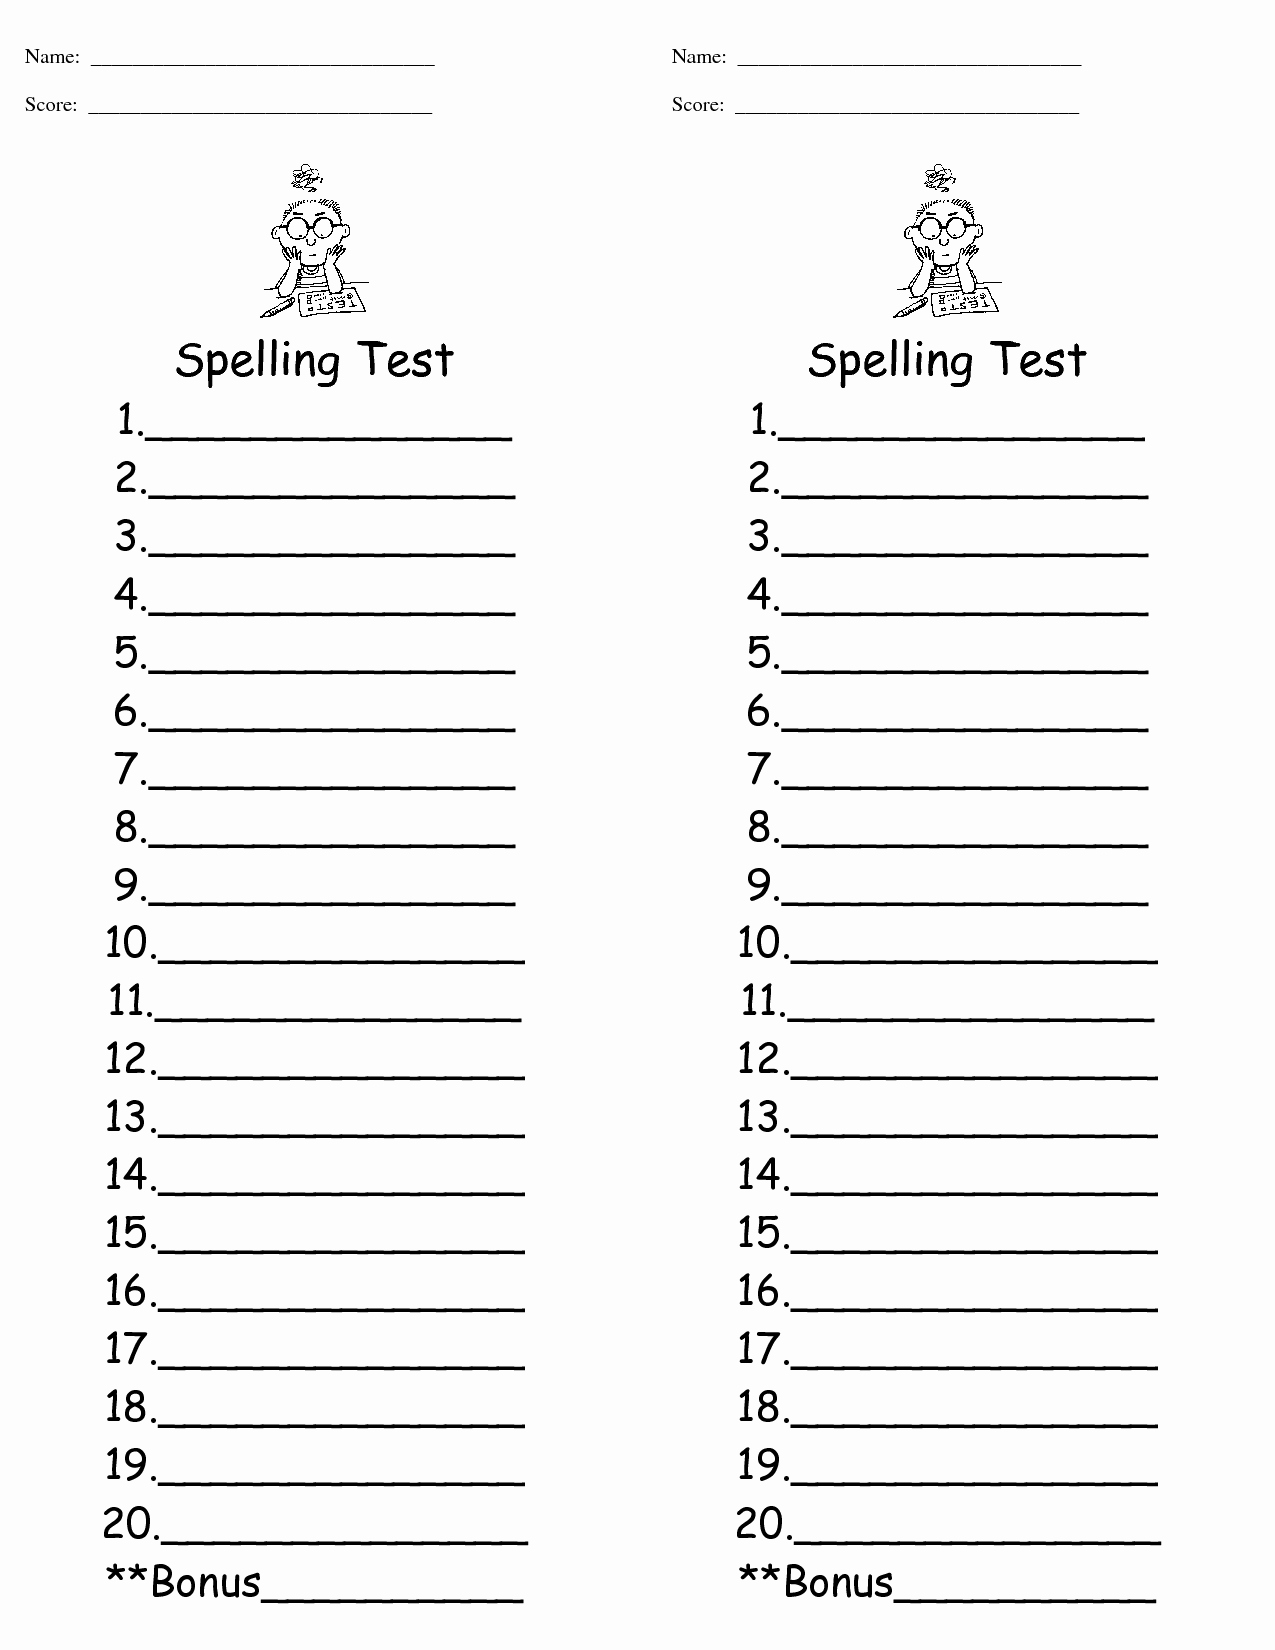 Spelling Test Template 15 Words Inspirational Spelling Test Template